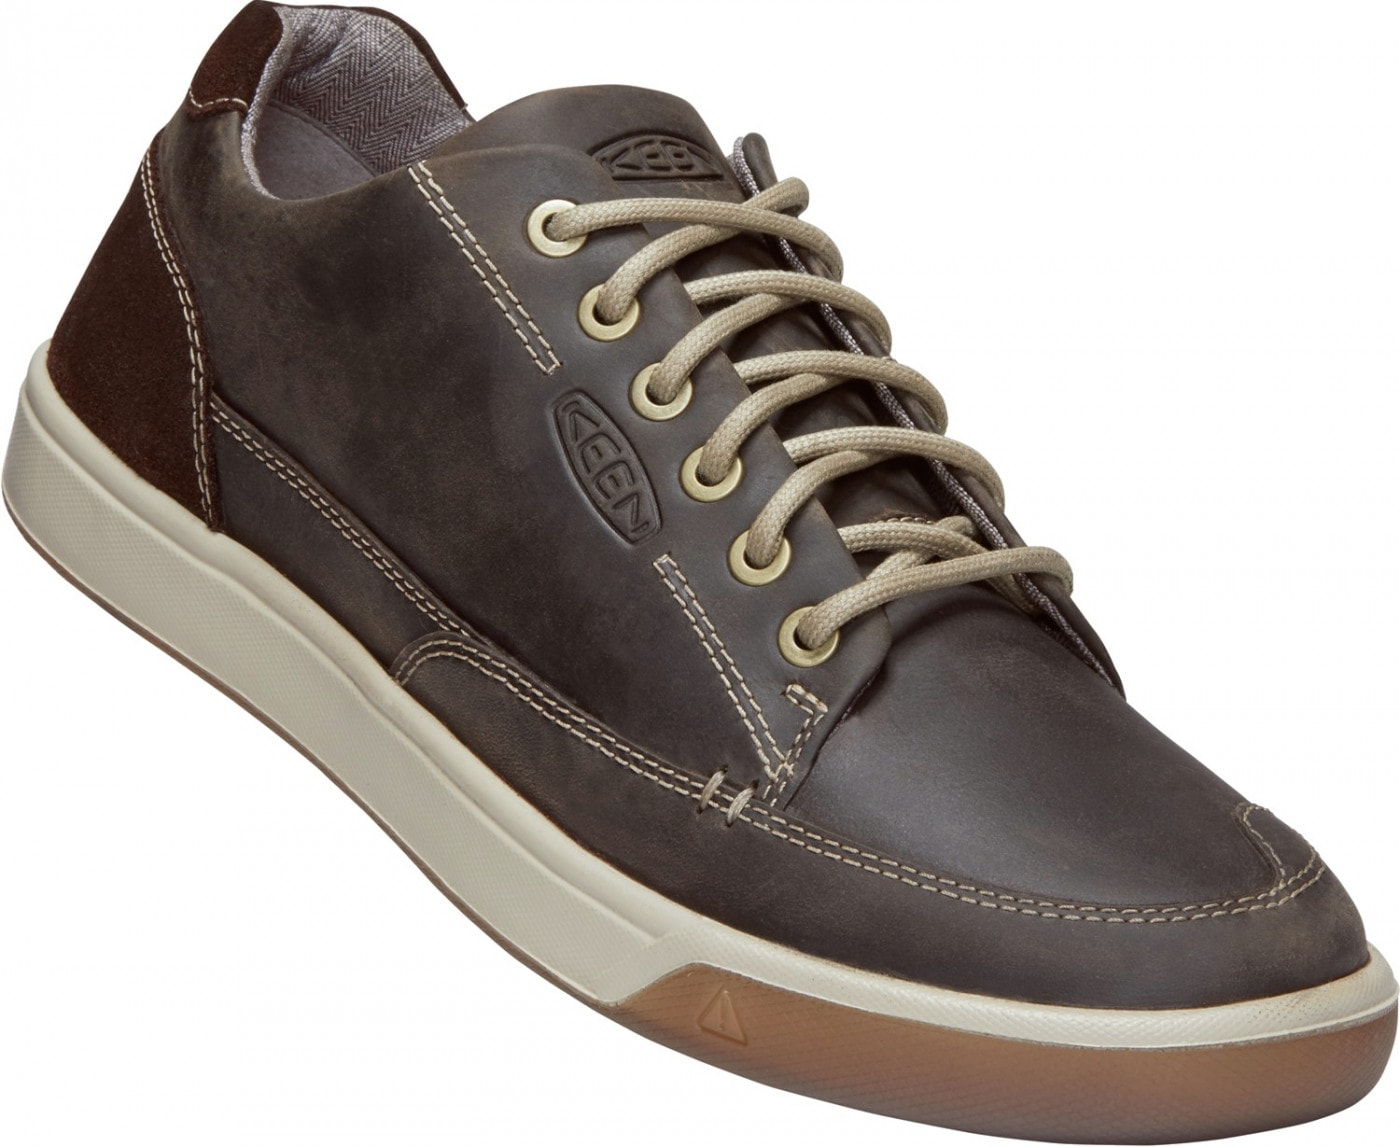 Men's shoes KEEN GLENHAVEN SNEAKER M